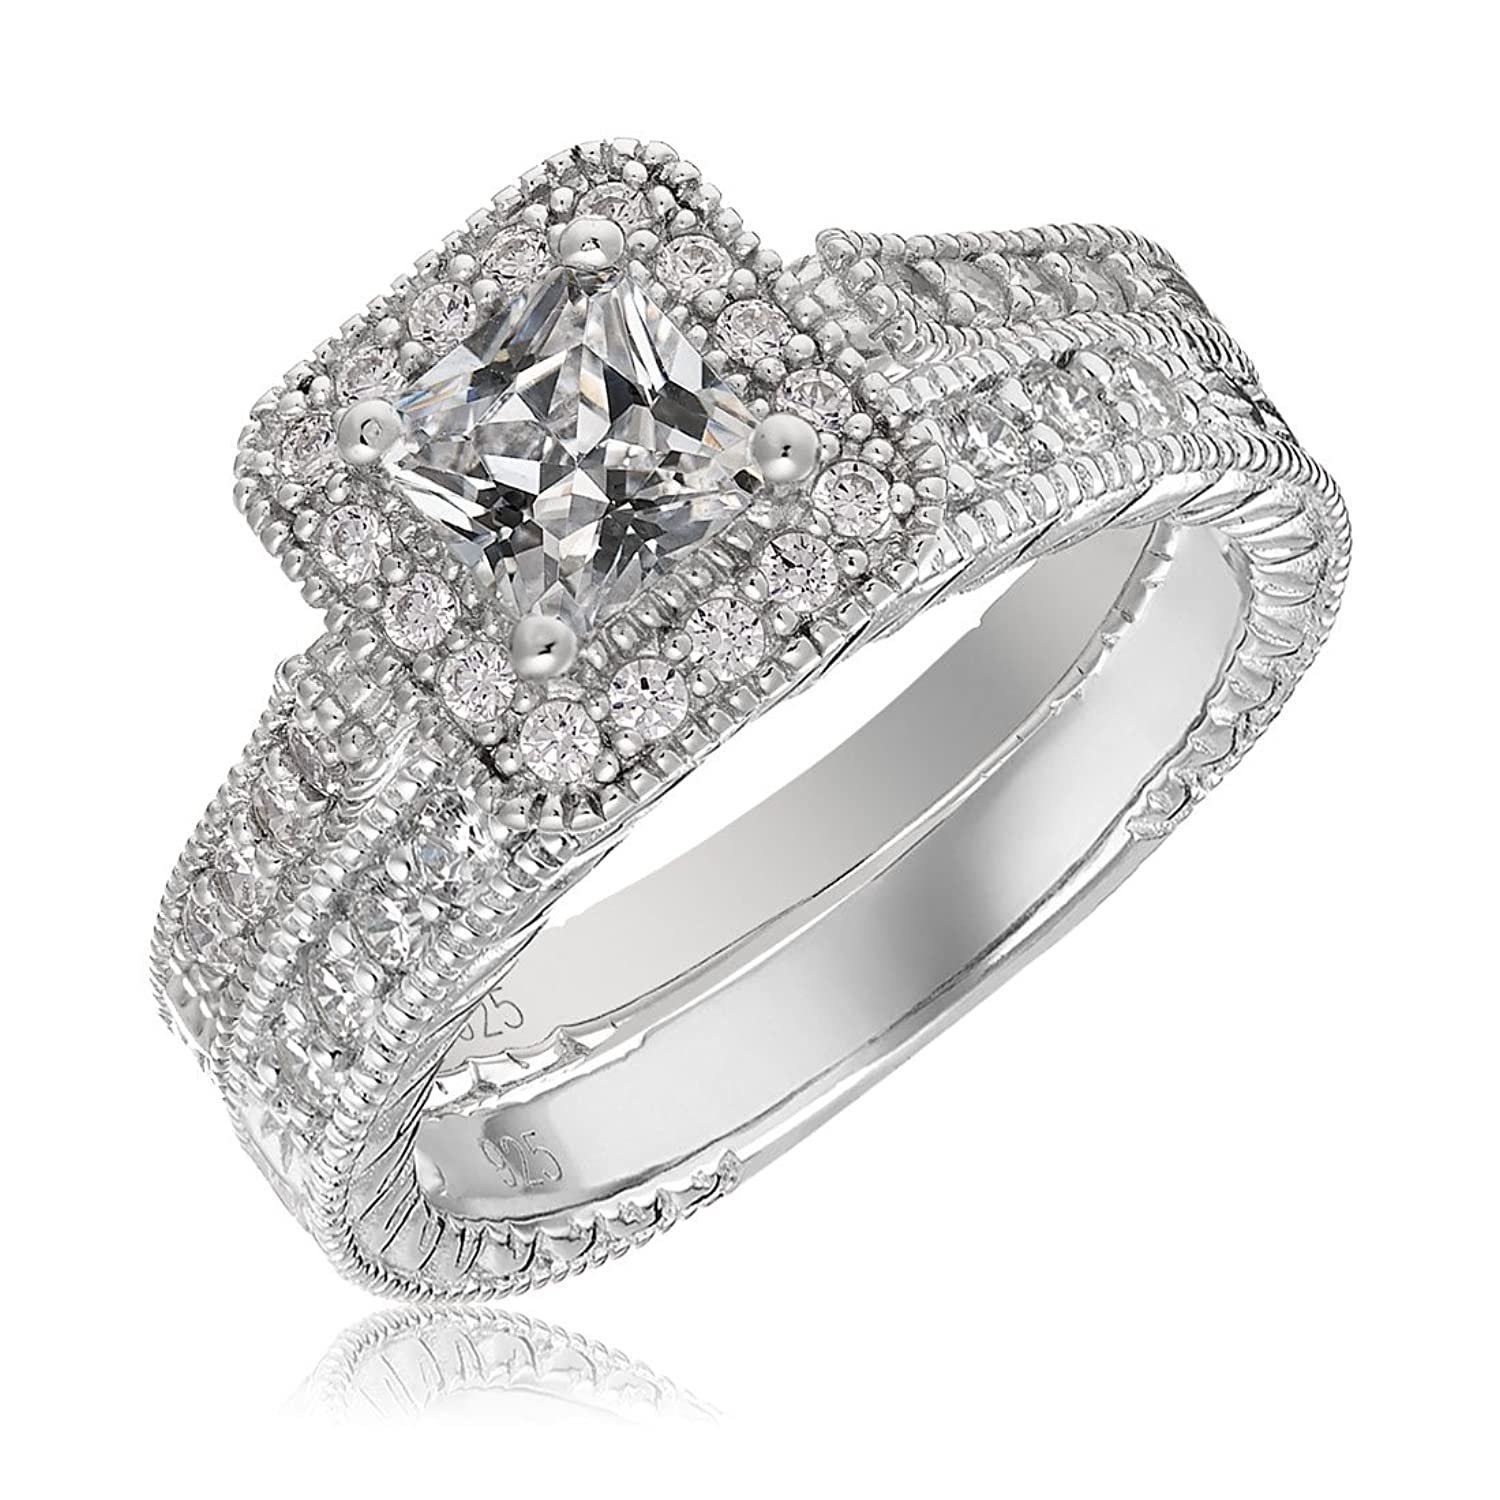 igzvaon wedding diamond wikipedia engagement bands rings promise ring